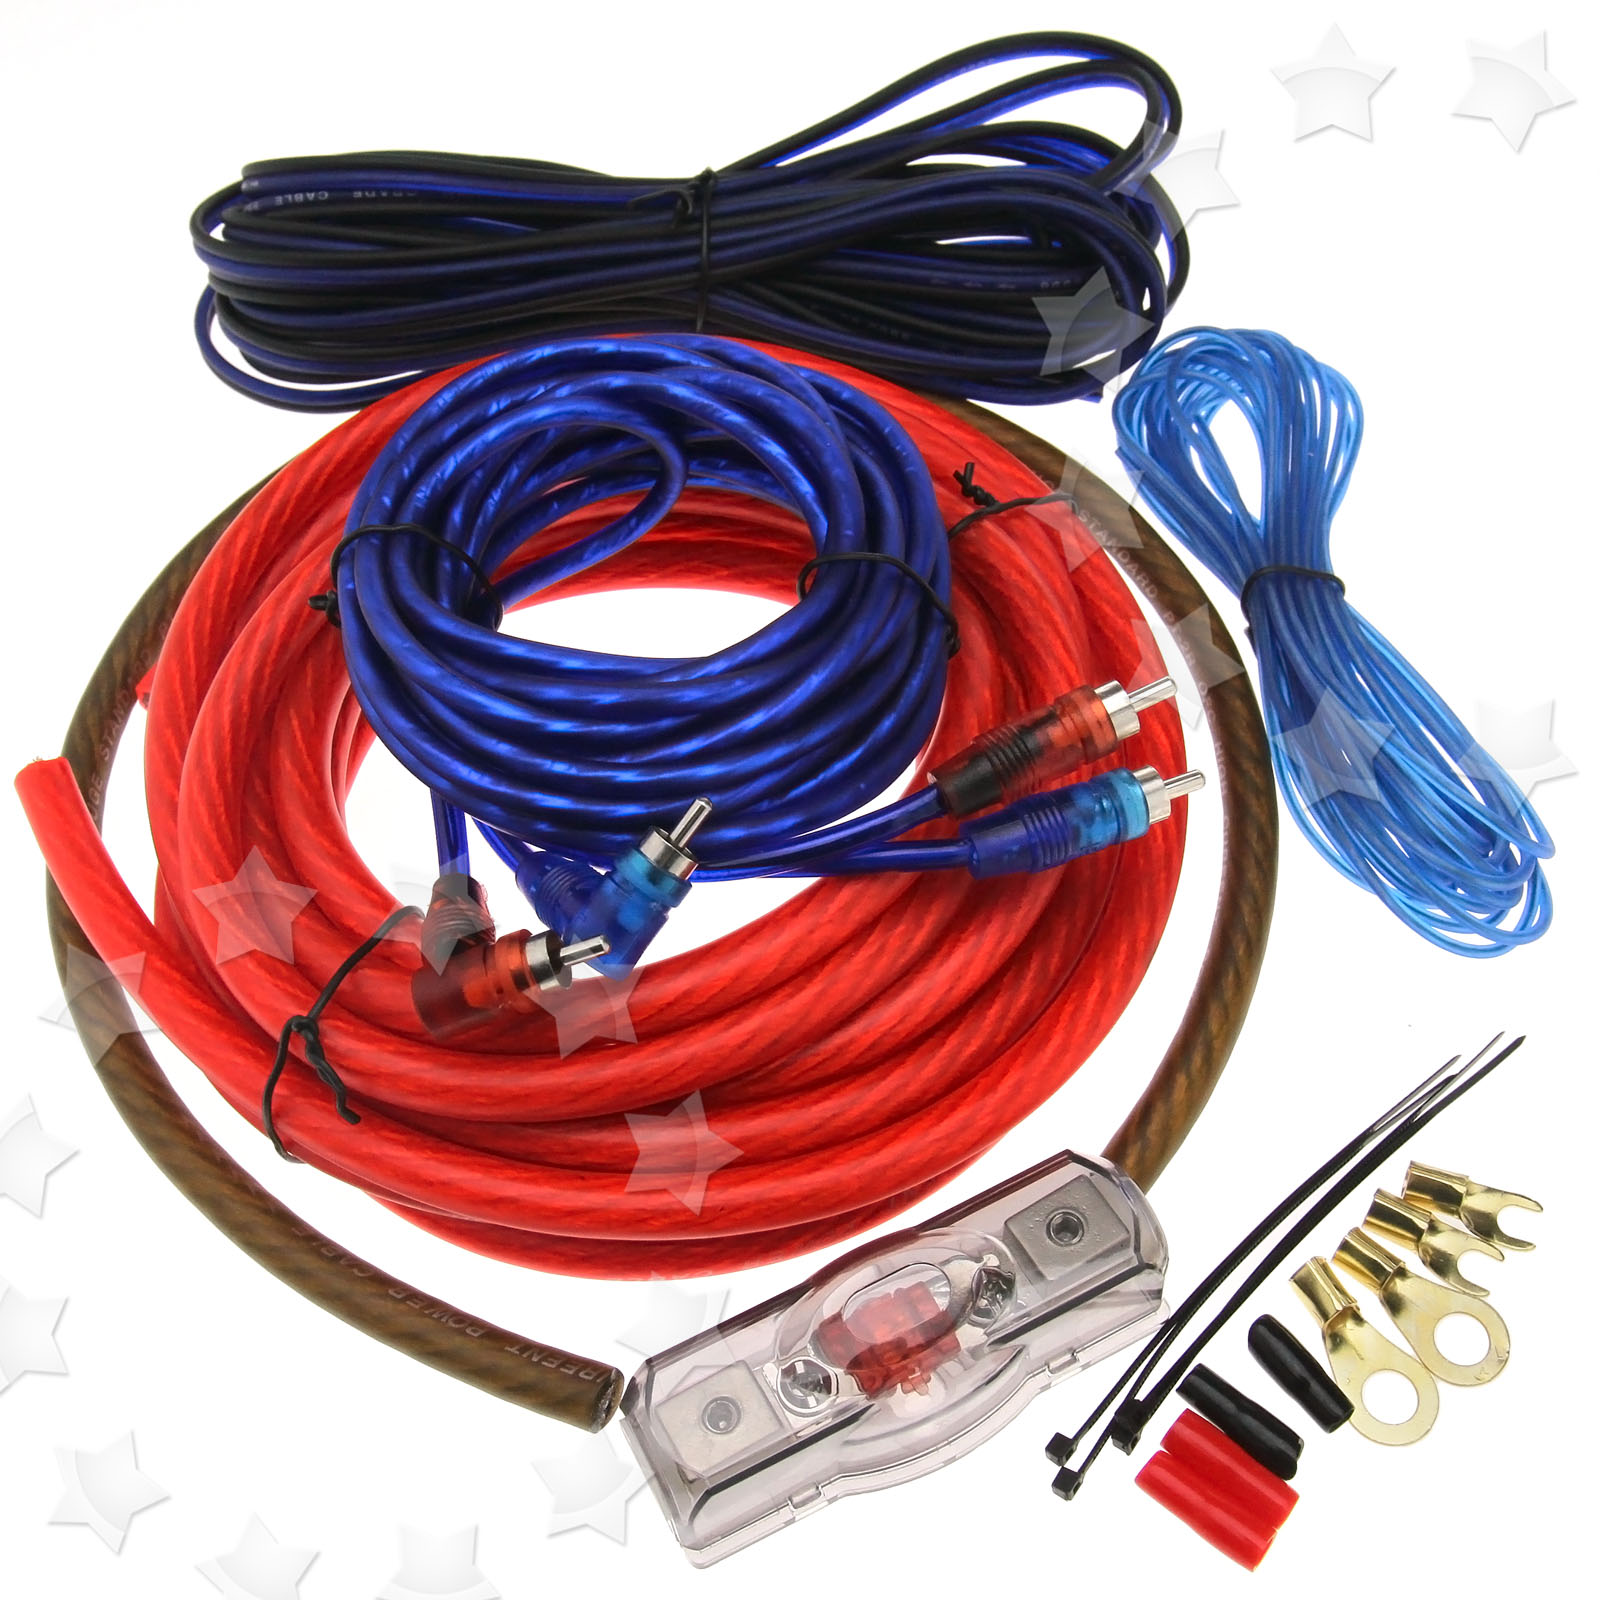 2000w 4 Gau 100a Car Amplifier Rca Wiring Fuse Audio Sound Amp And Subwoofer Photo Album Wire Sub 4ga Holder Cable Kit